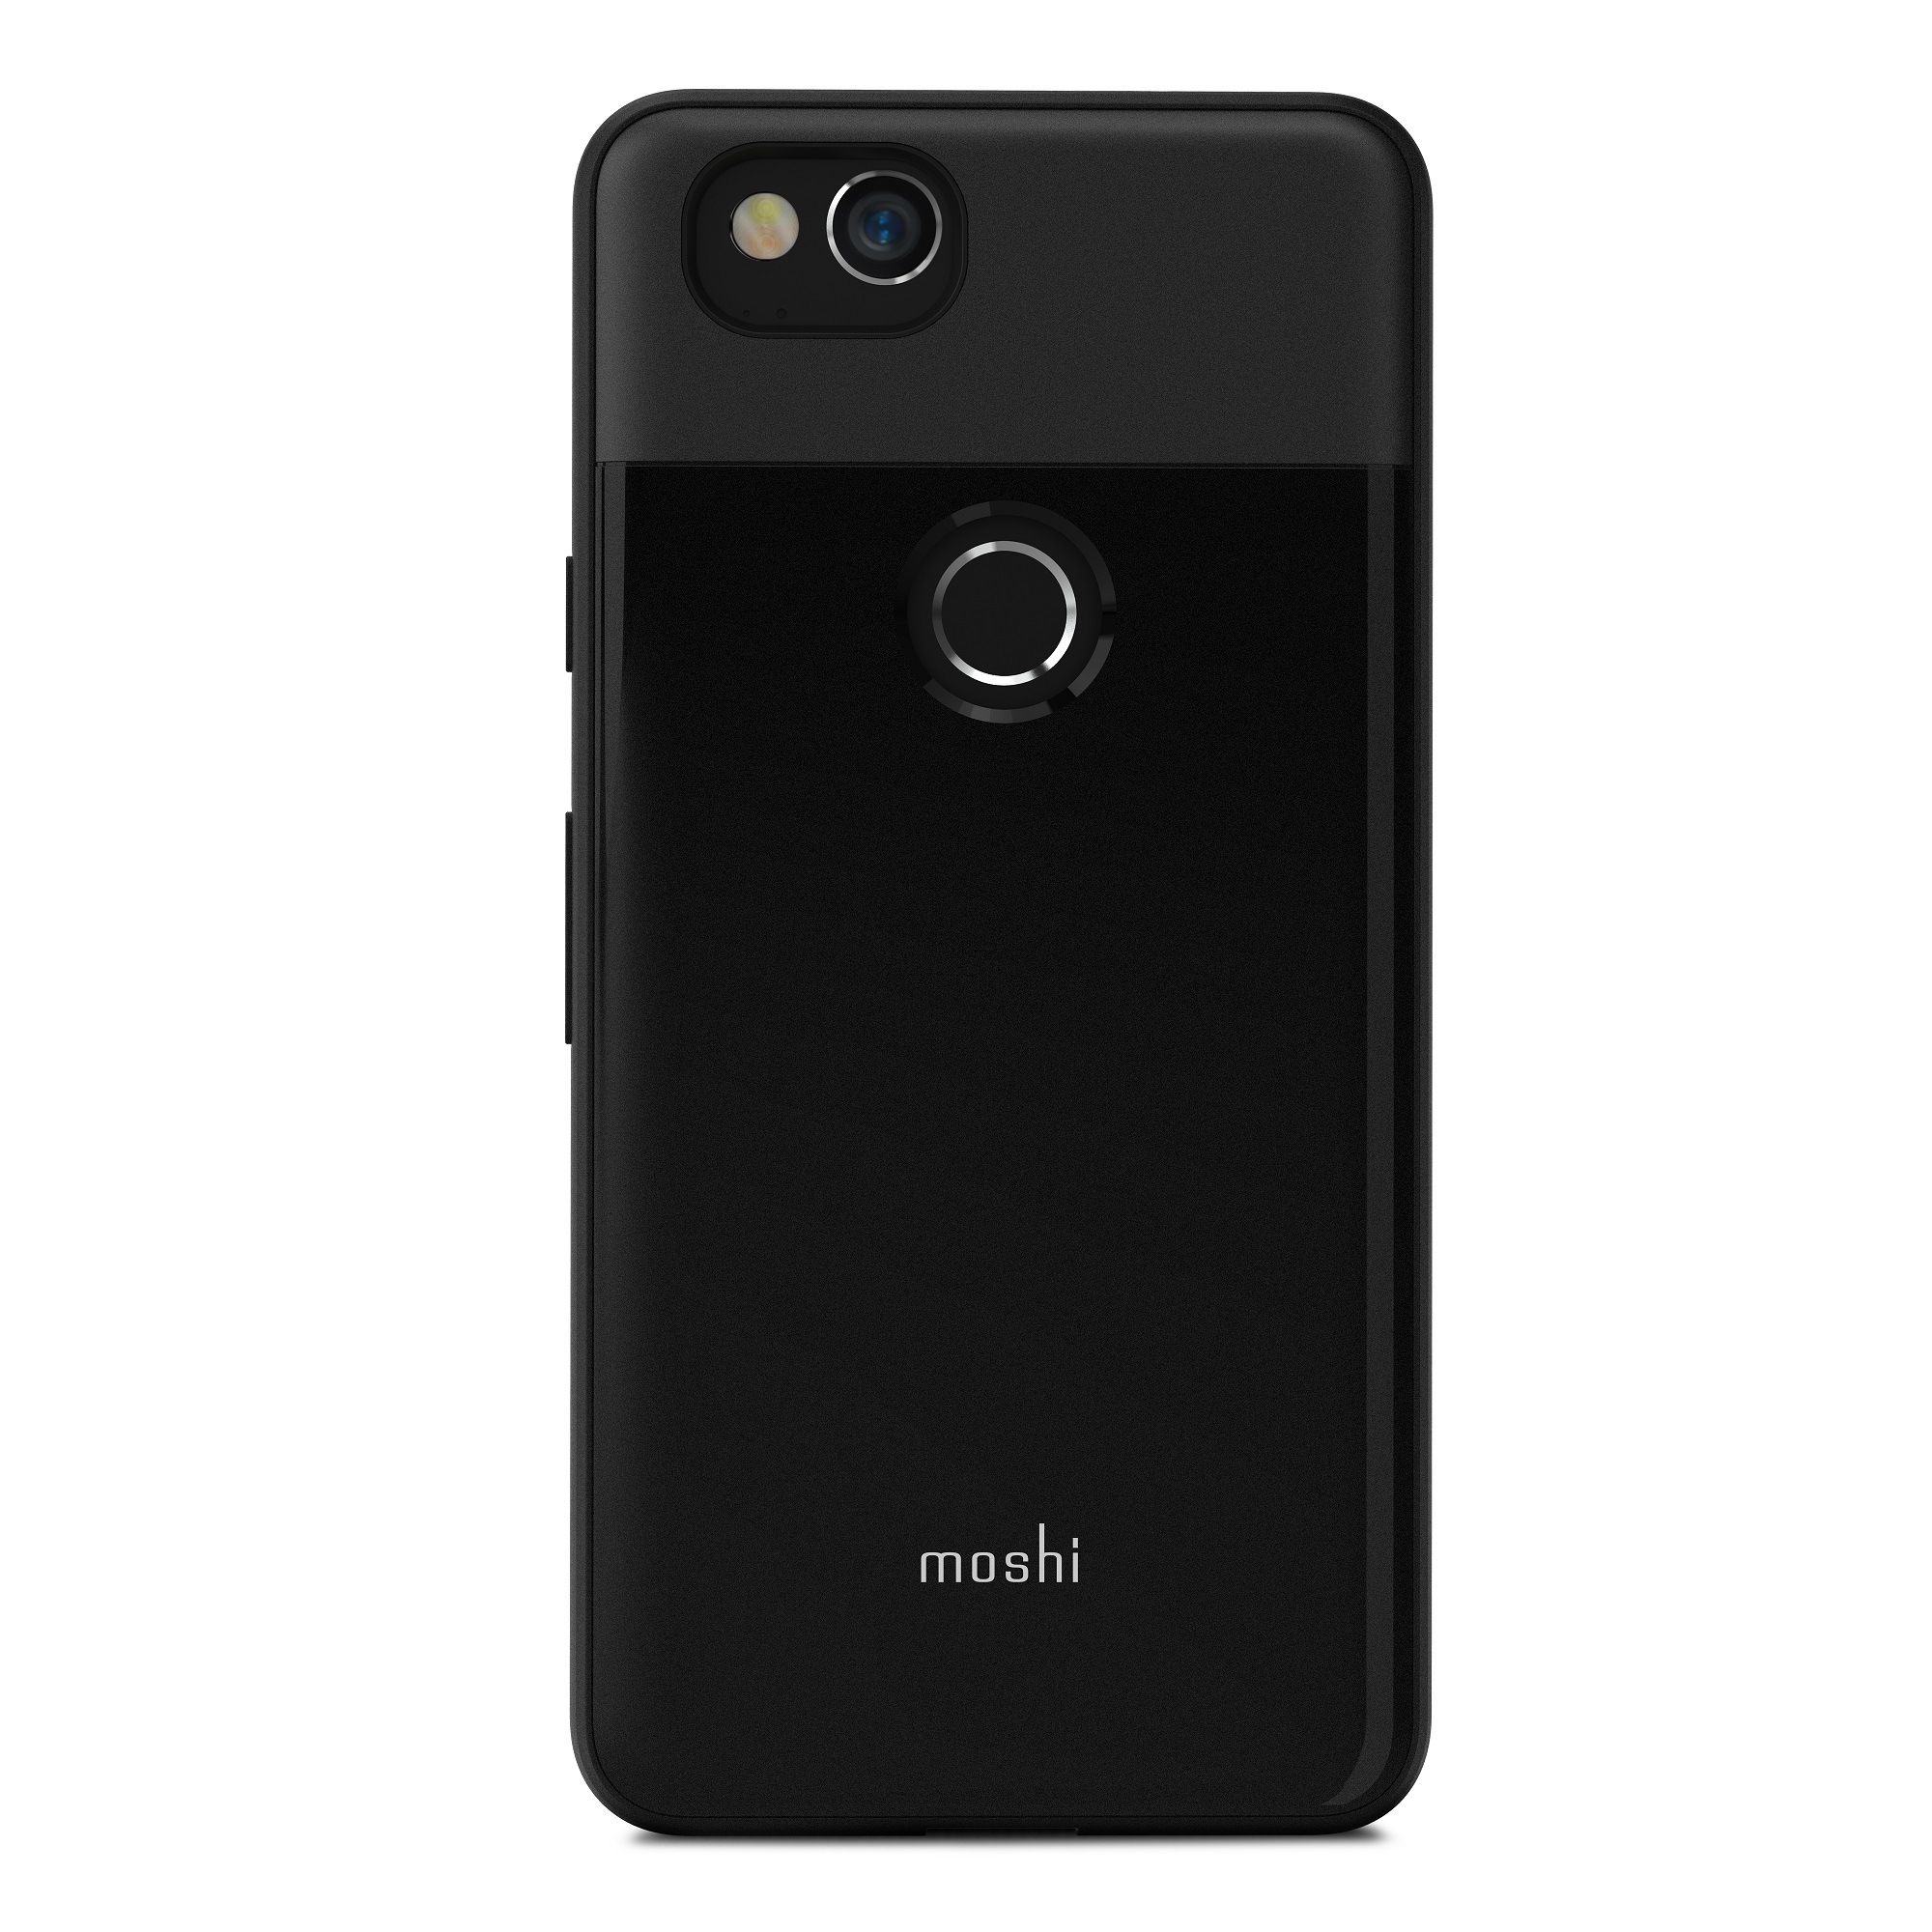 Moshi Tycho Case for Google Pixel 2